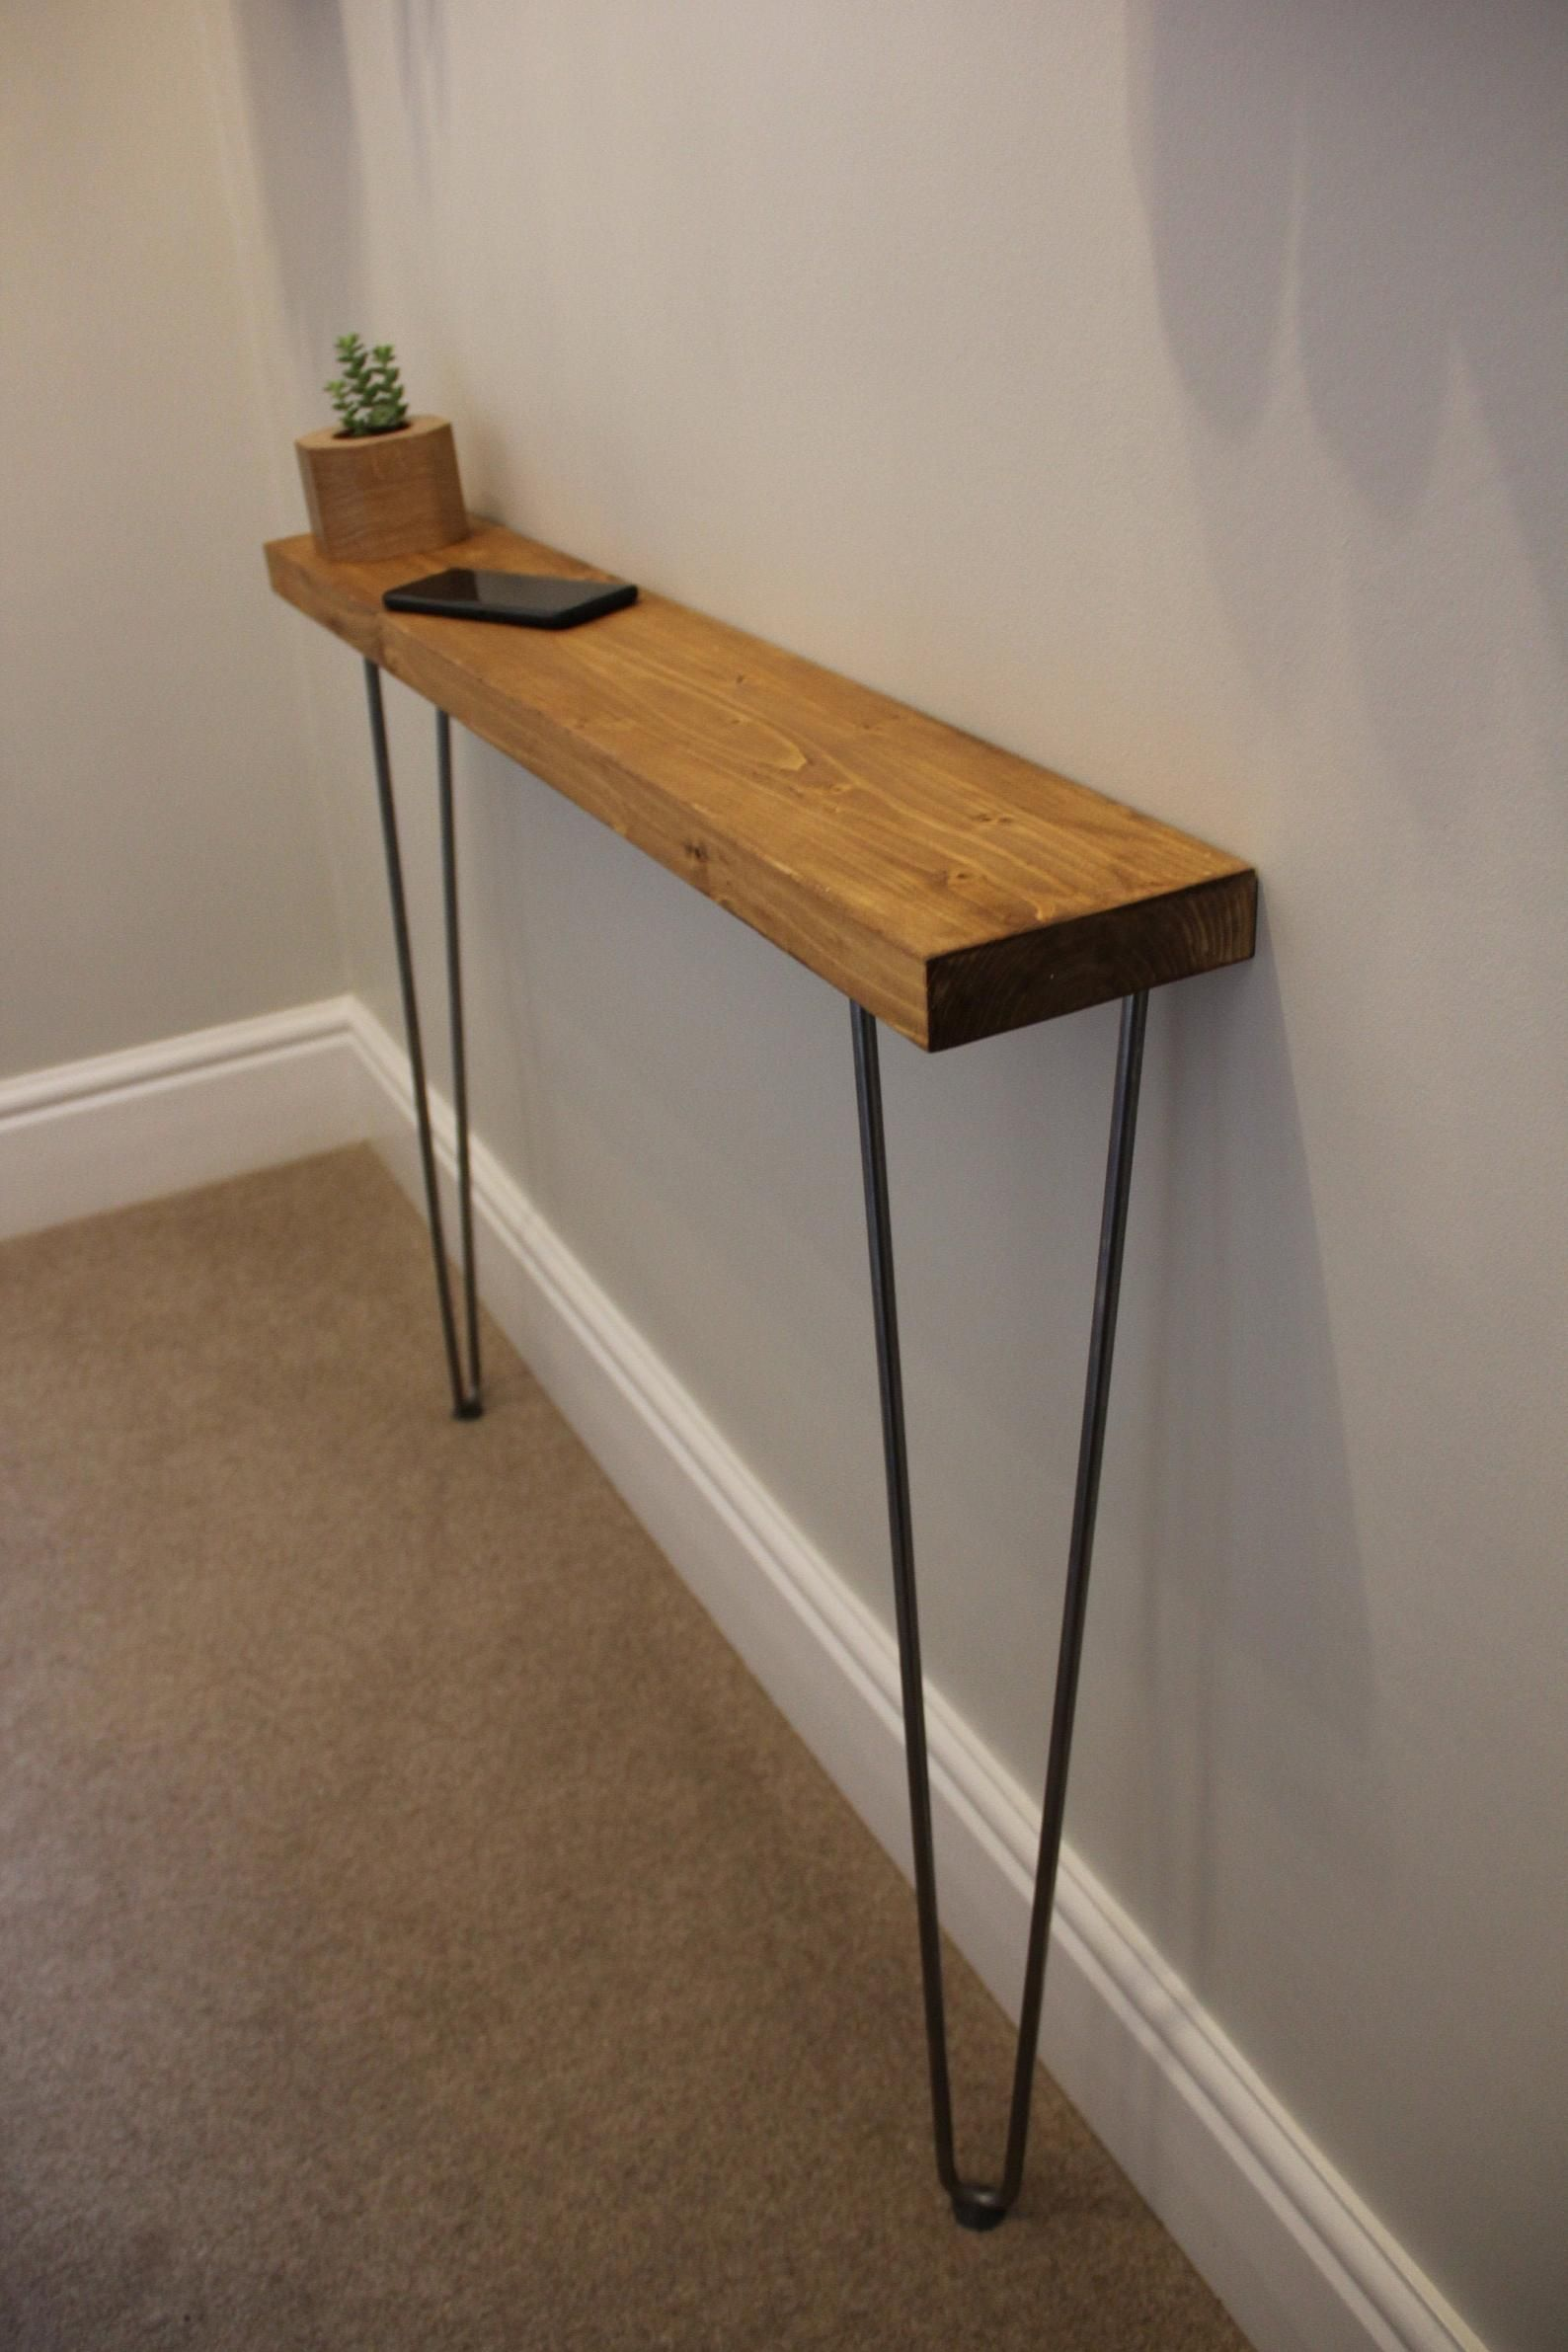 Rustic Console Table 86cm Height Narrow Hairpin Legs Wooden